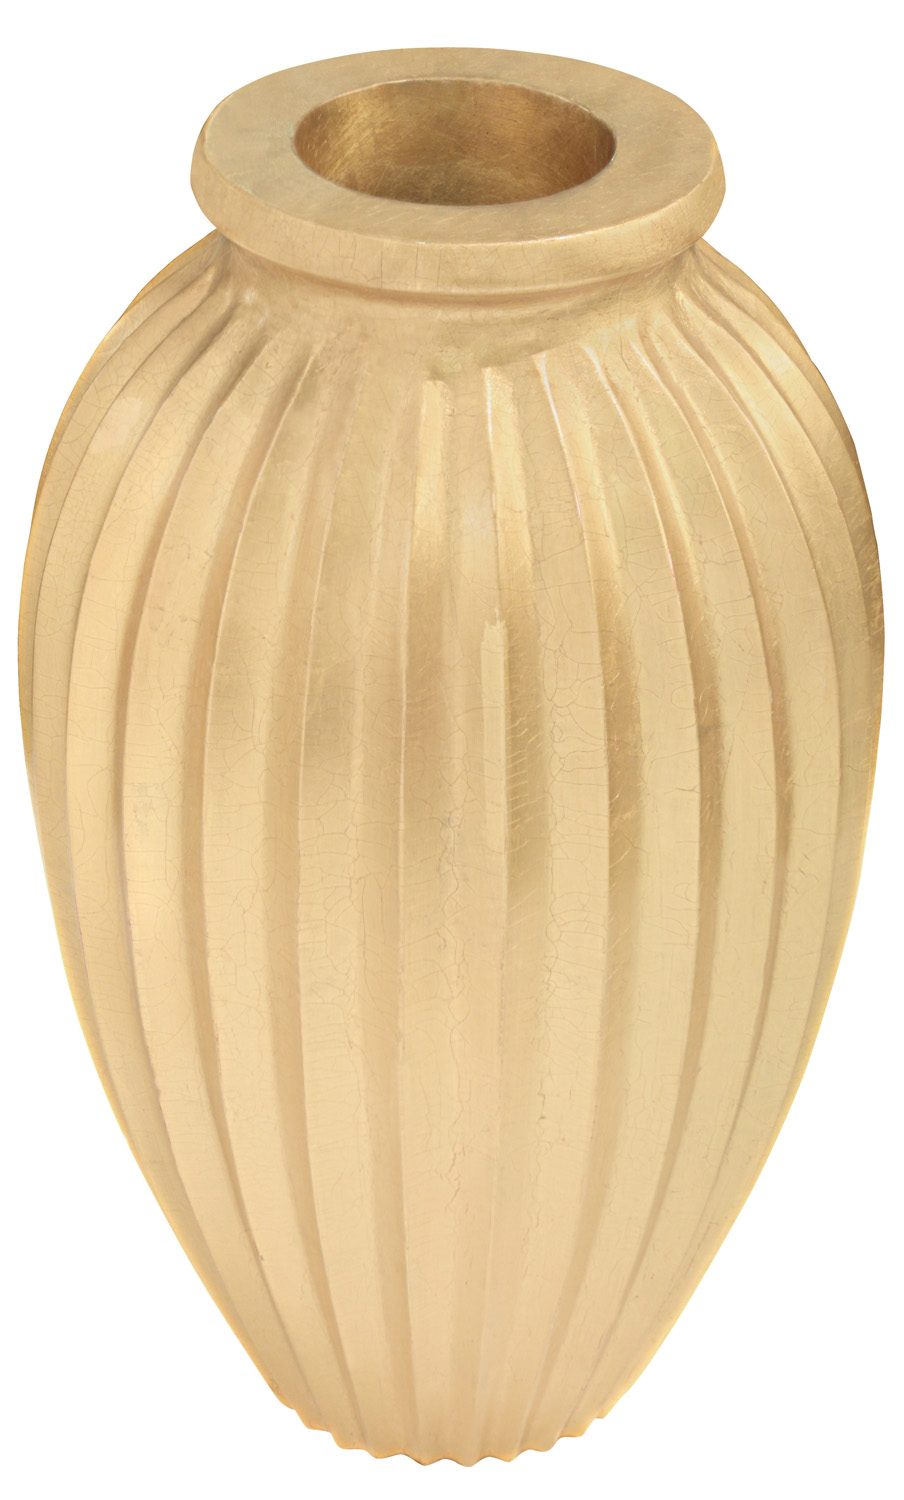 Springer 65 lrg gold fluted vases accessory137 detail1 hires.jpg